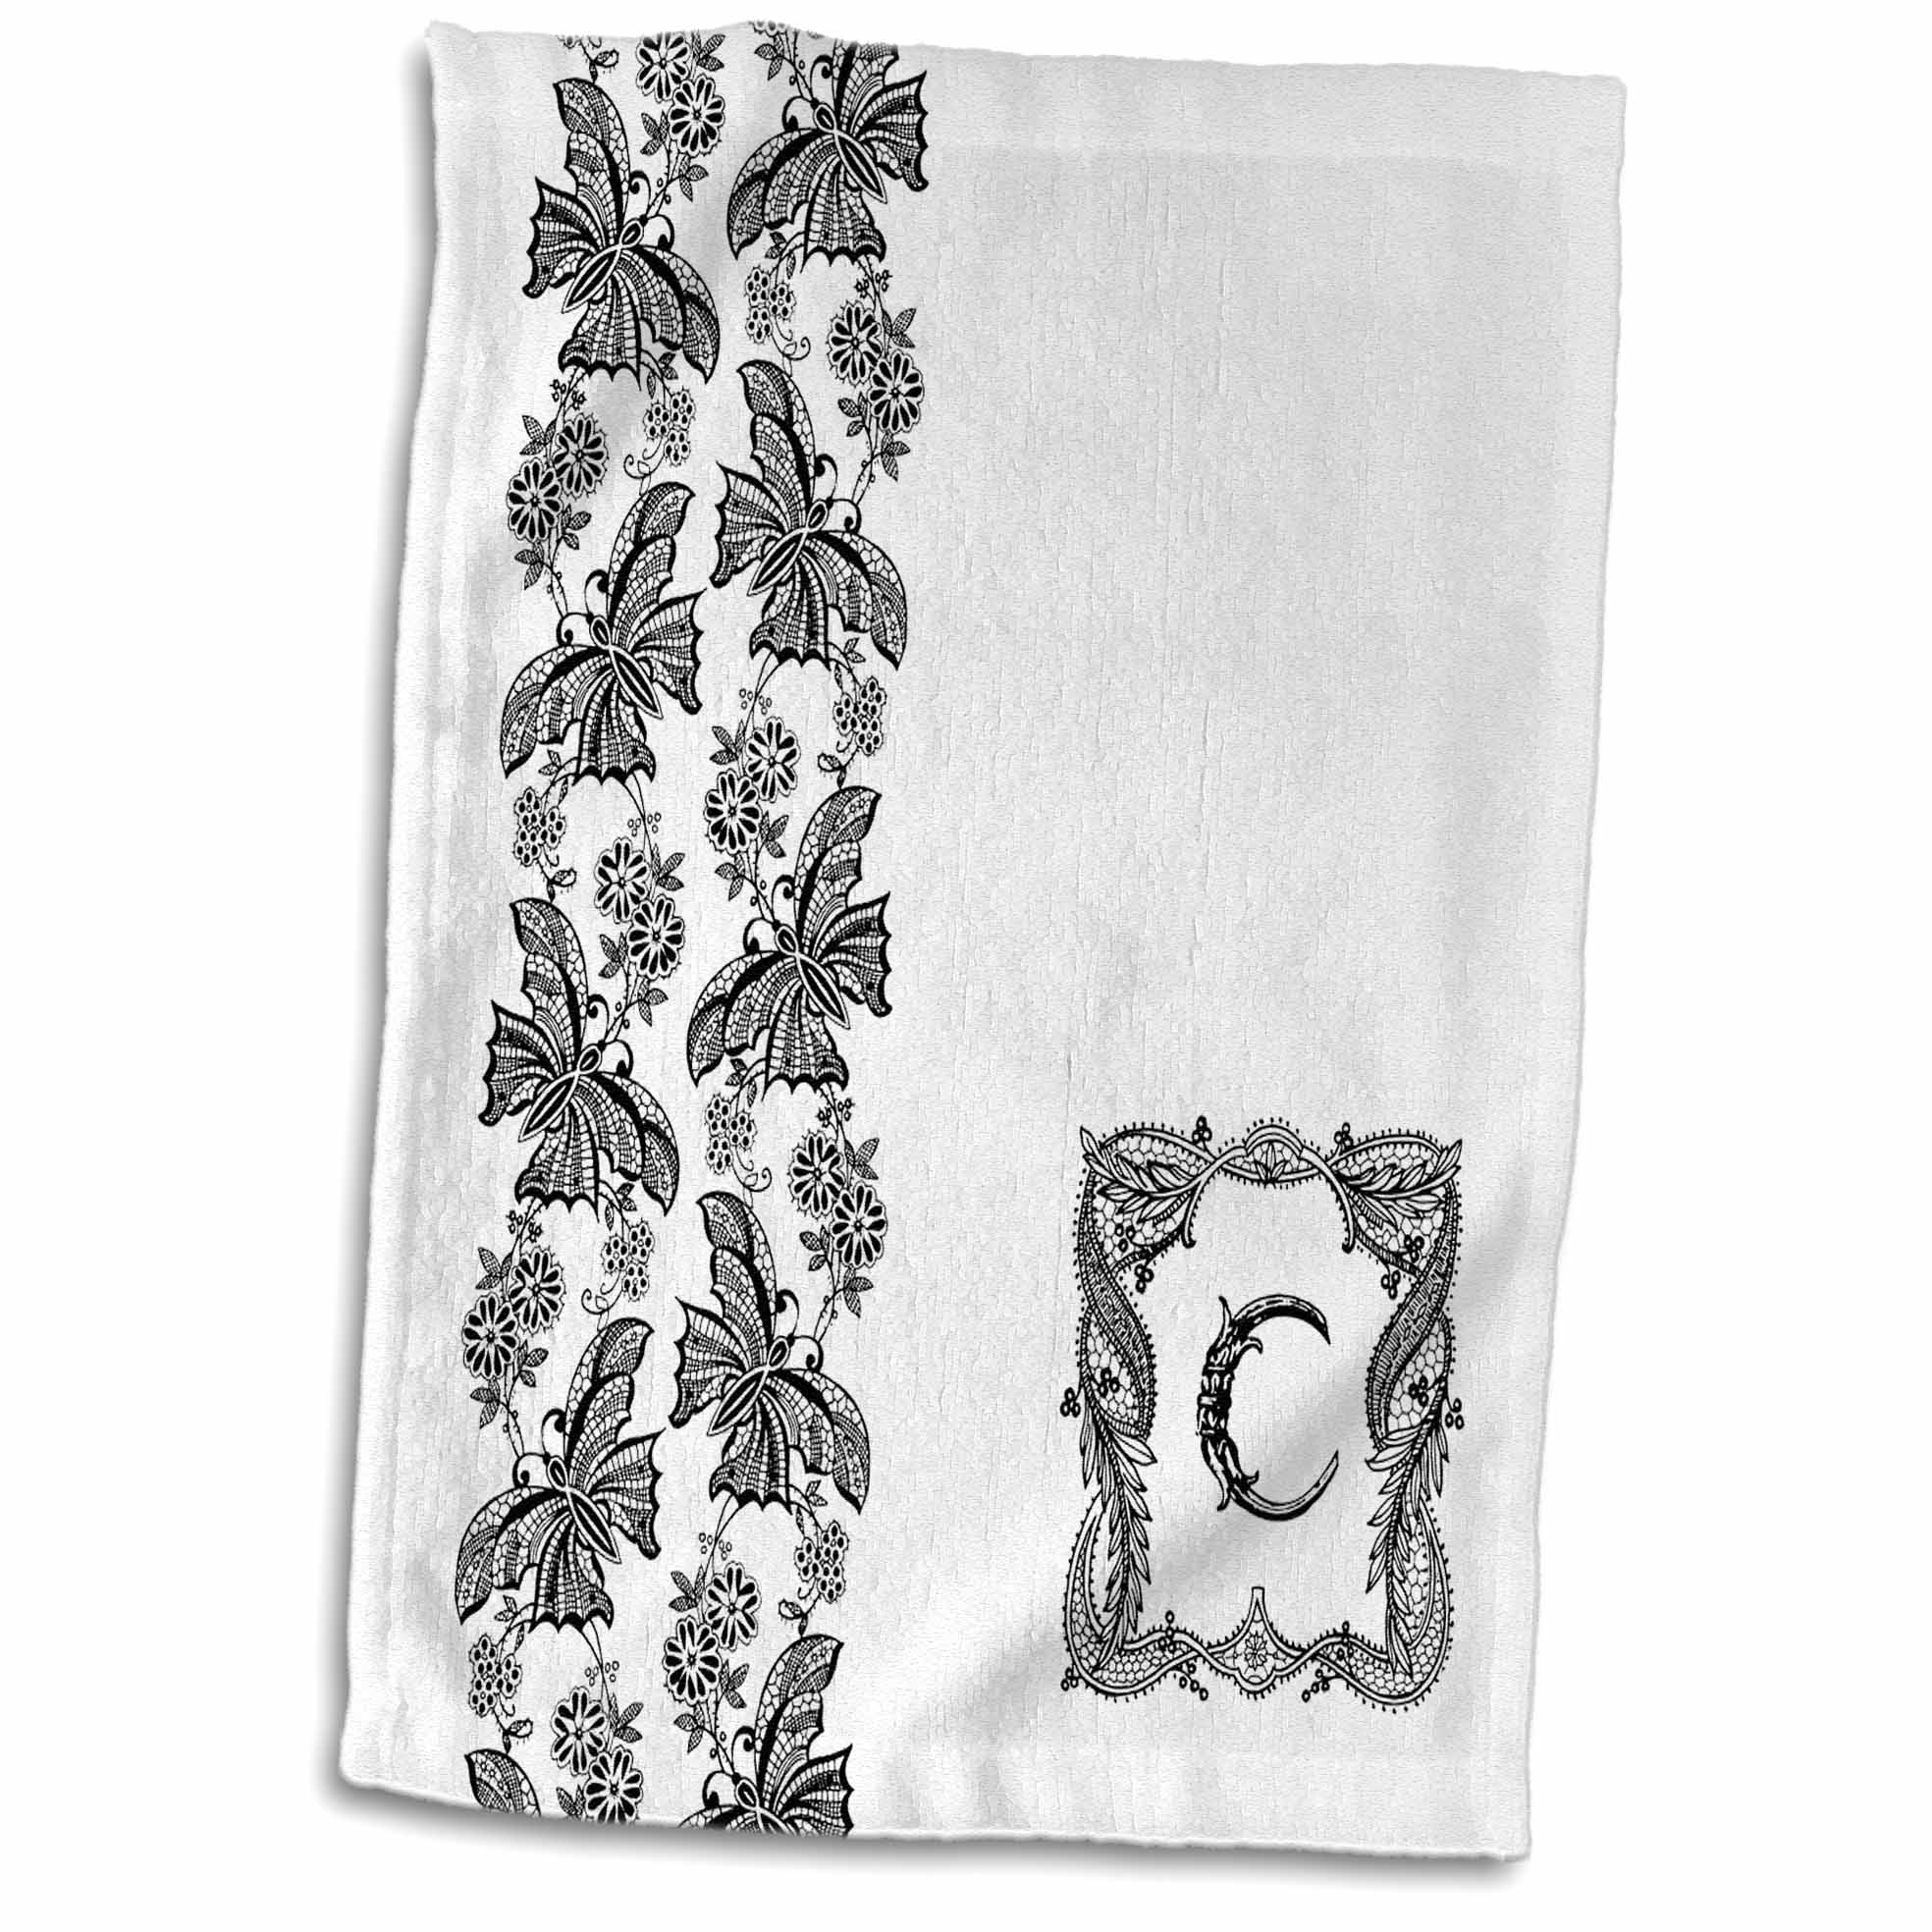 3dRose Monogram Initial C in Black Lace with Butterfly Detail - Towel, 15 by 22-inch